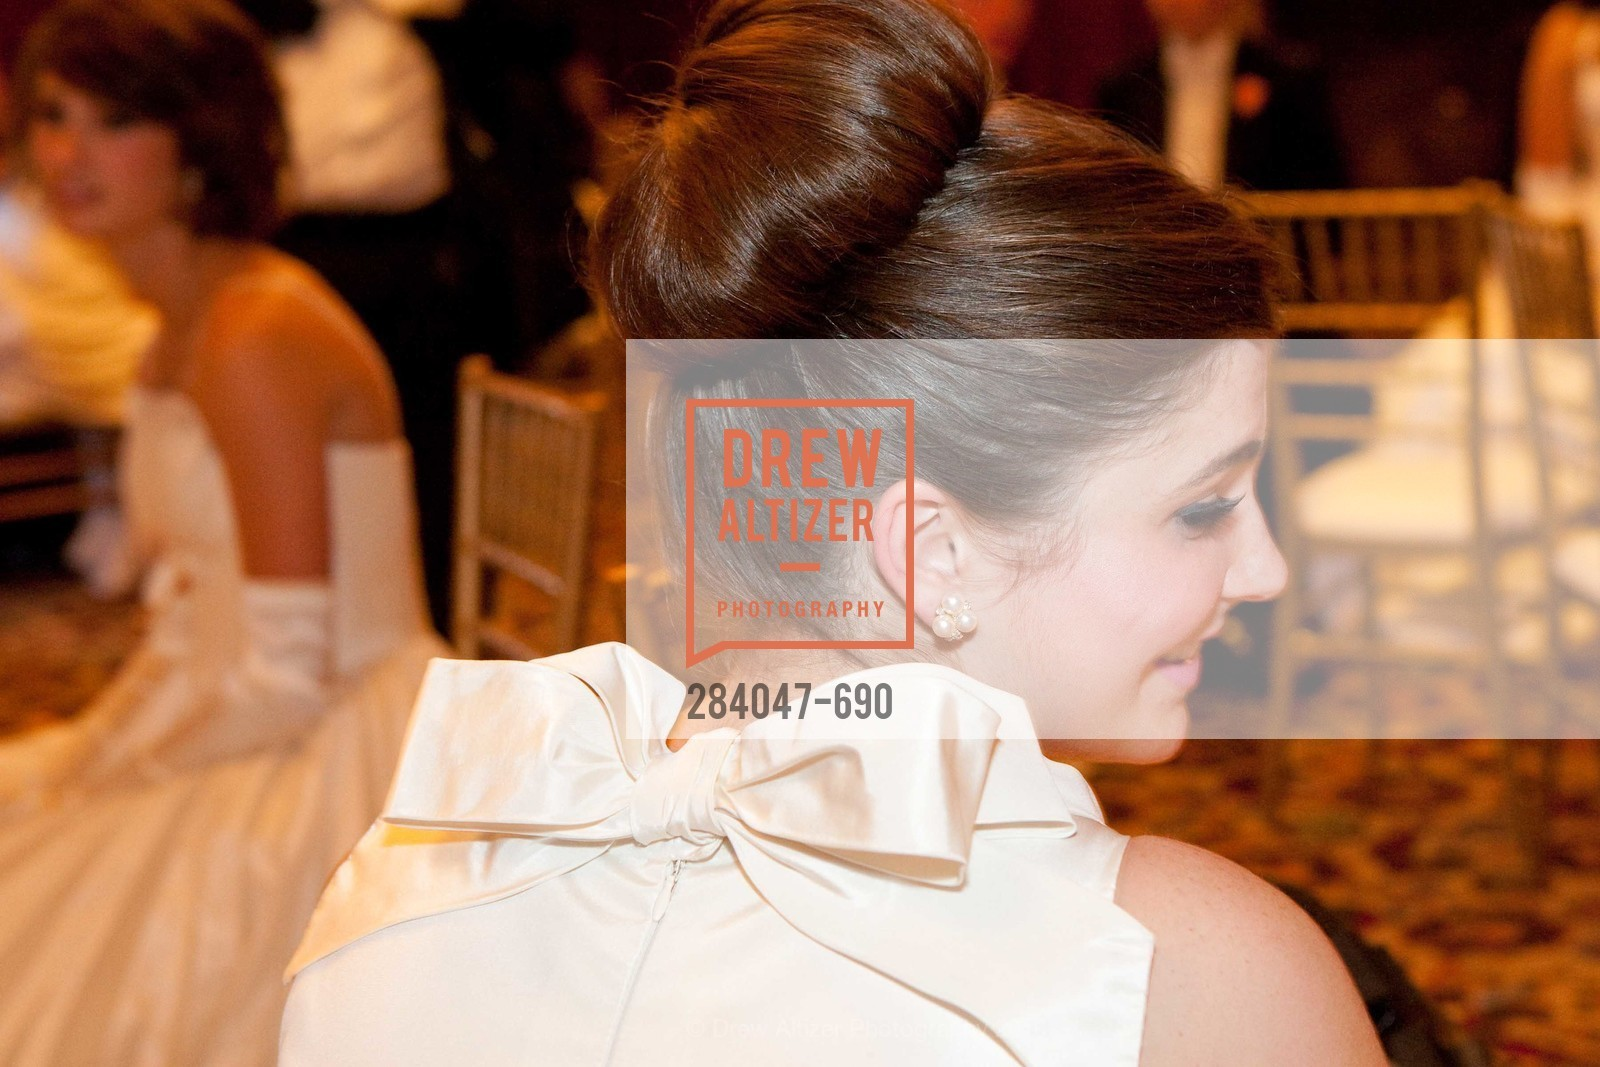 Denise McLeod Rollandi, 2009 Debutante Ball, Unknown, July 4th, 2008,Drew Altizer, Drew Altizer Photography, full-service agency, private events, San Francisco photographer, photographer california